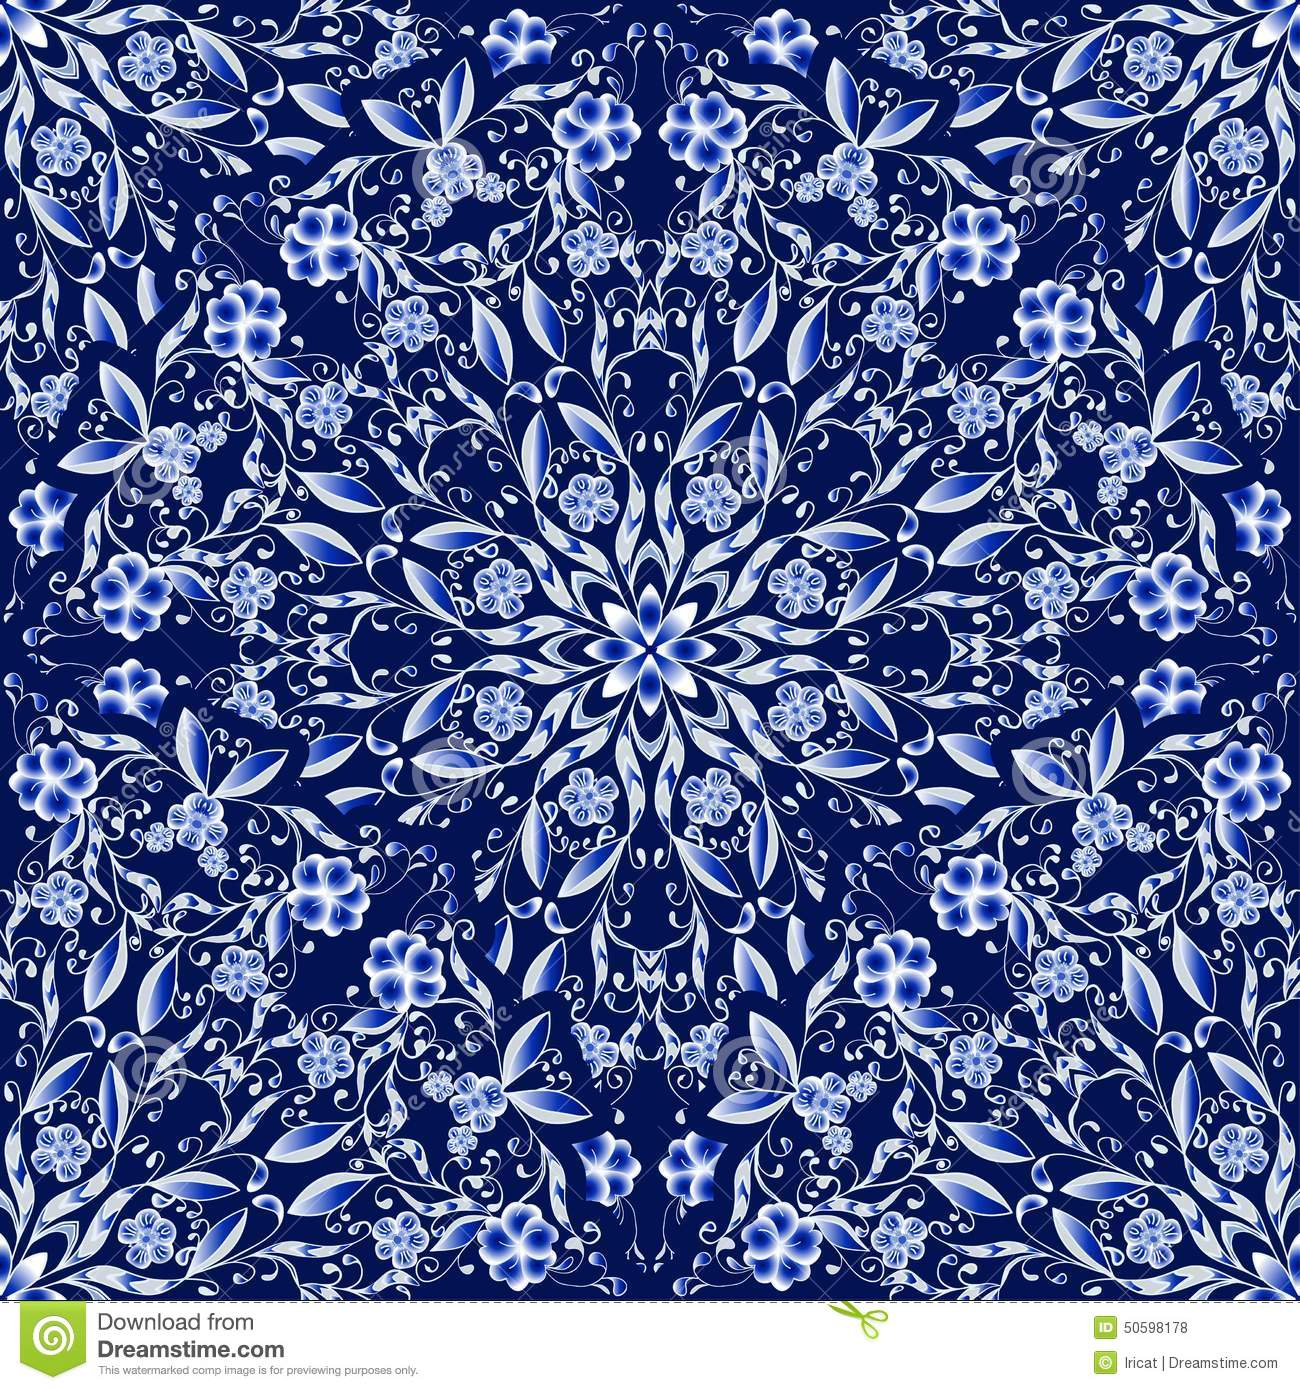 seamless floral pattern of circular ornaments dark blue